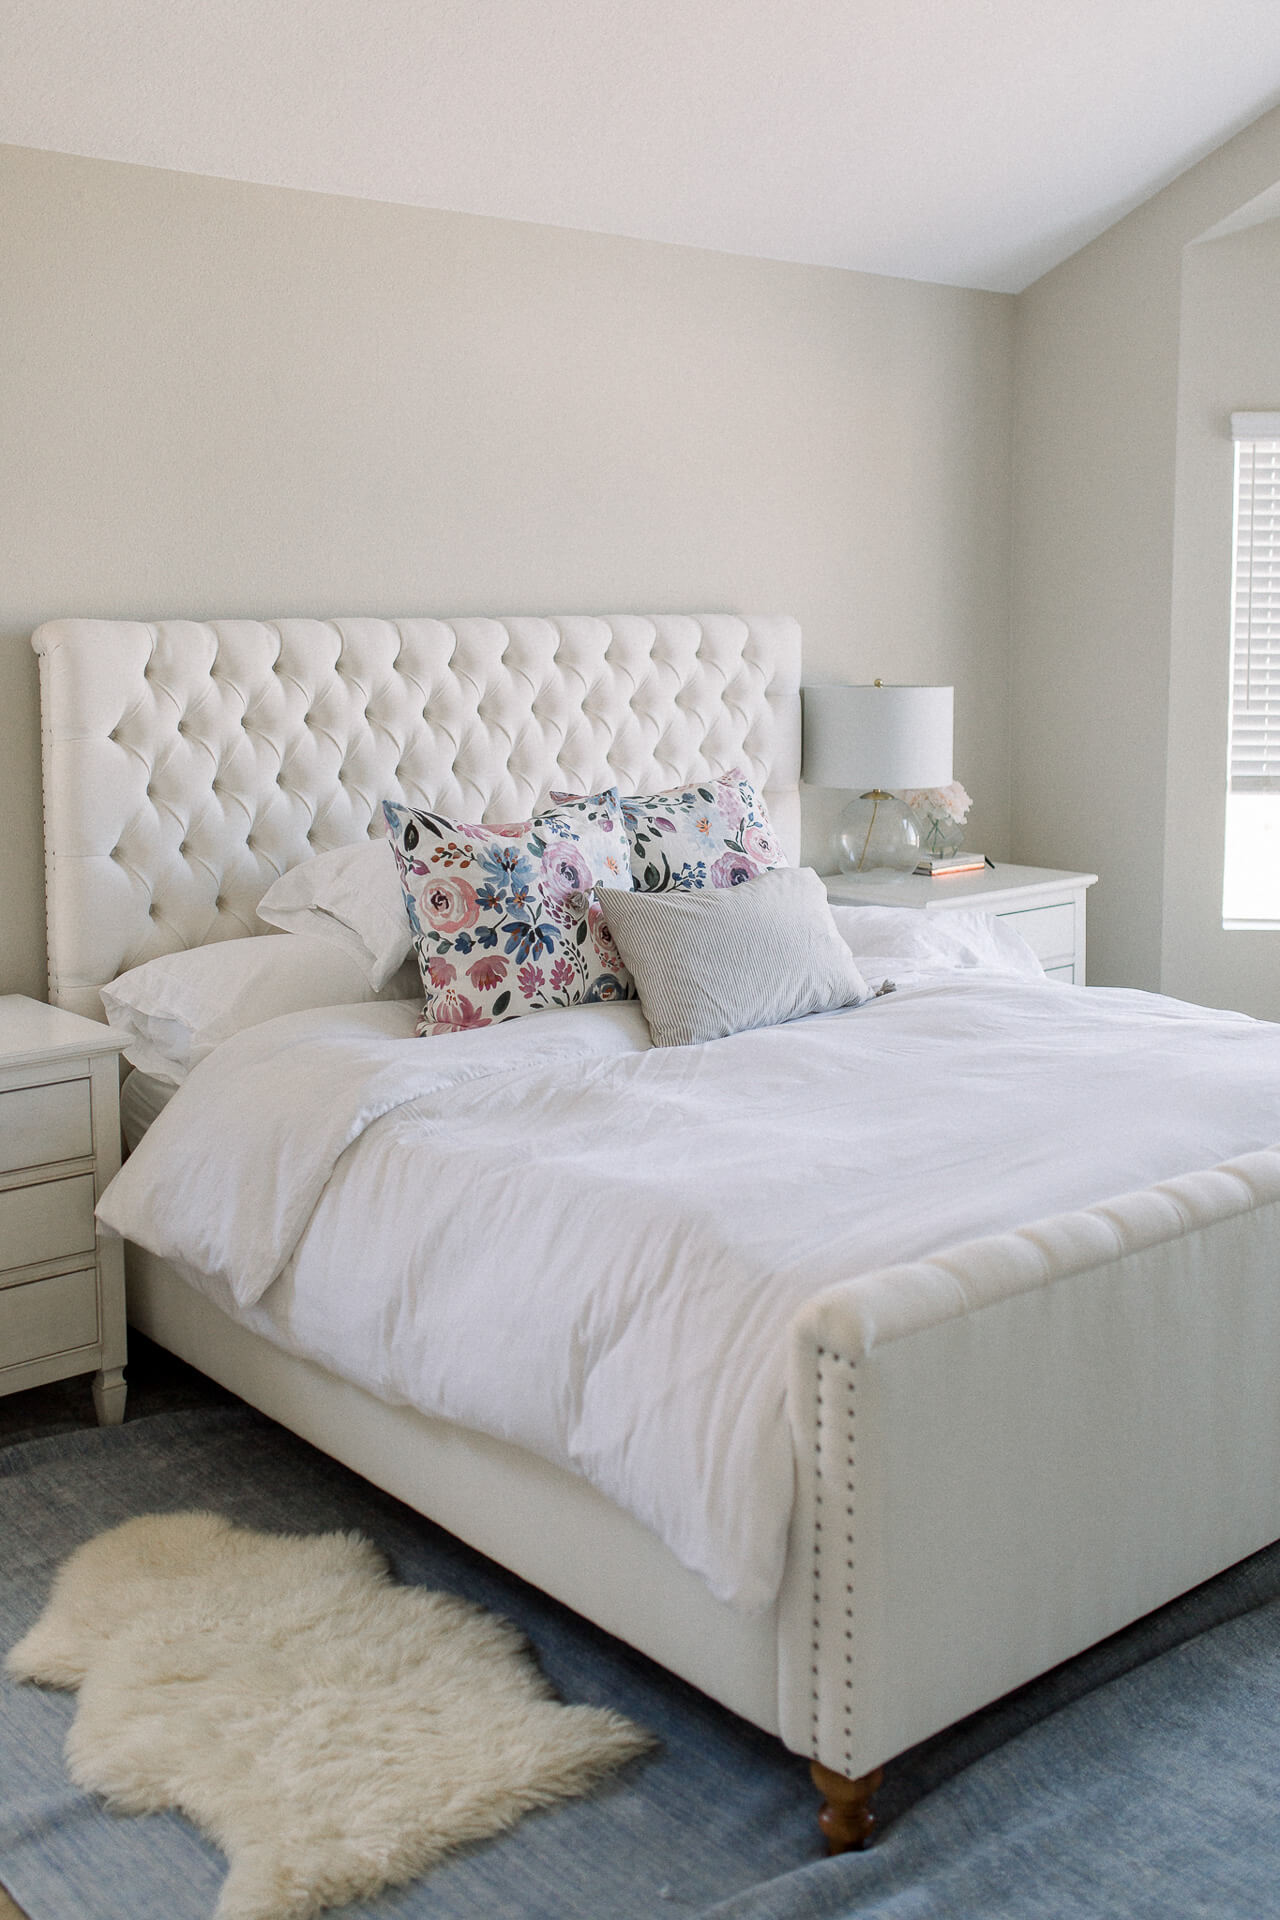 I love this neutral bedroom decor!